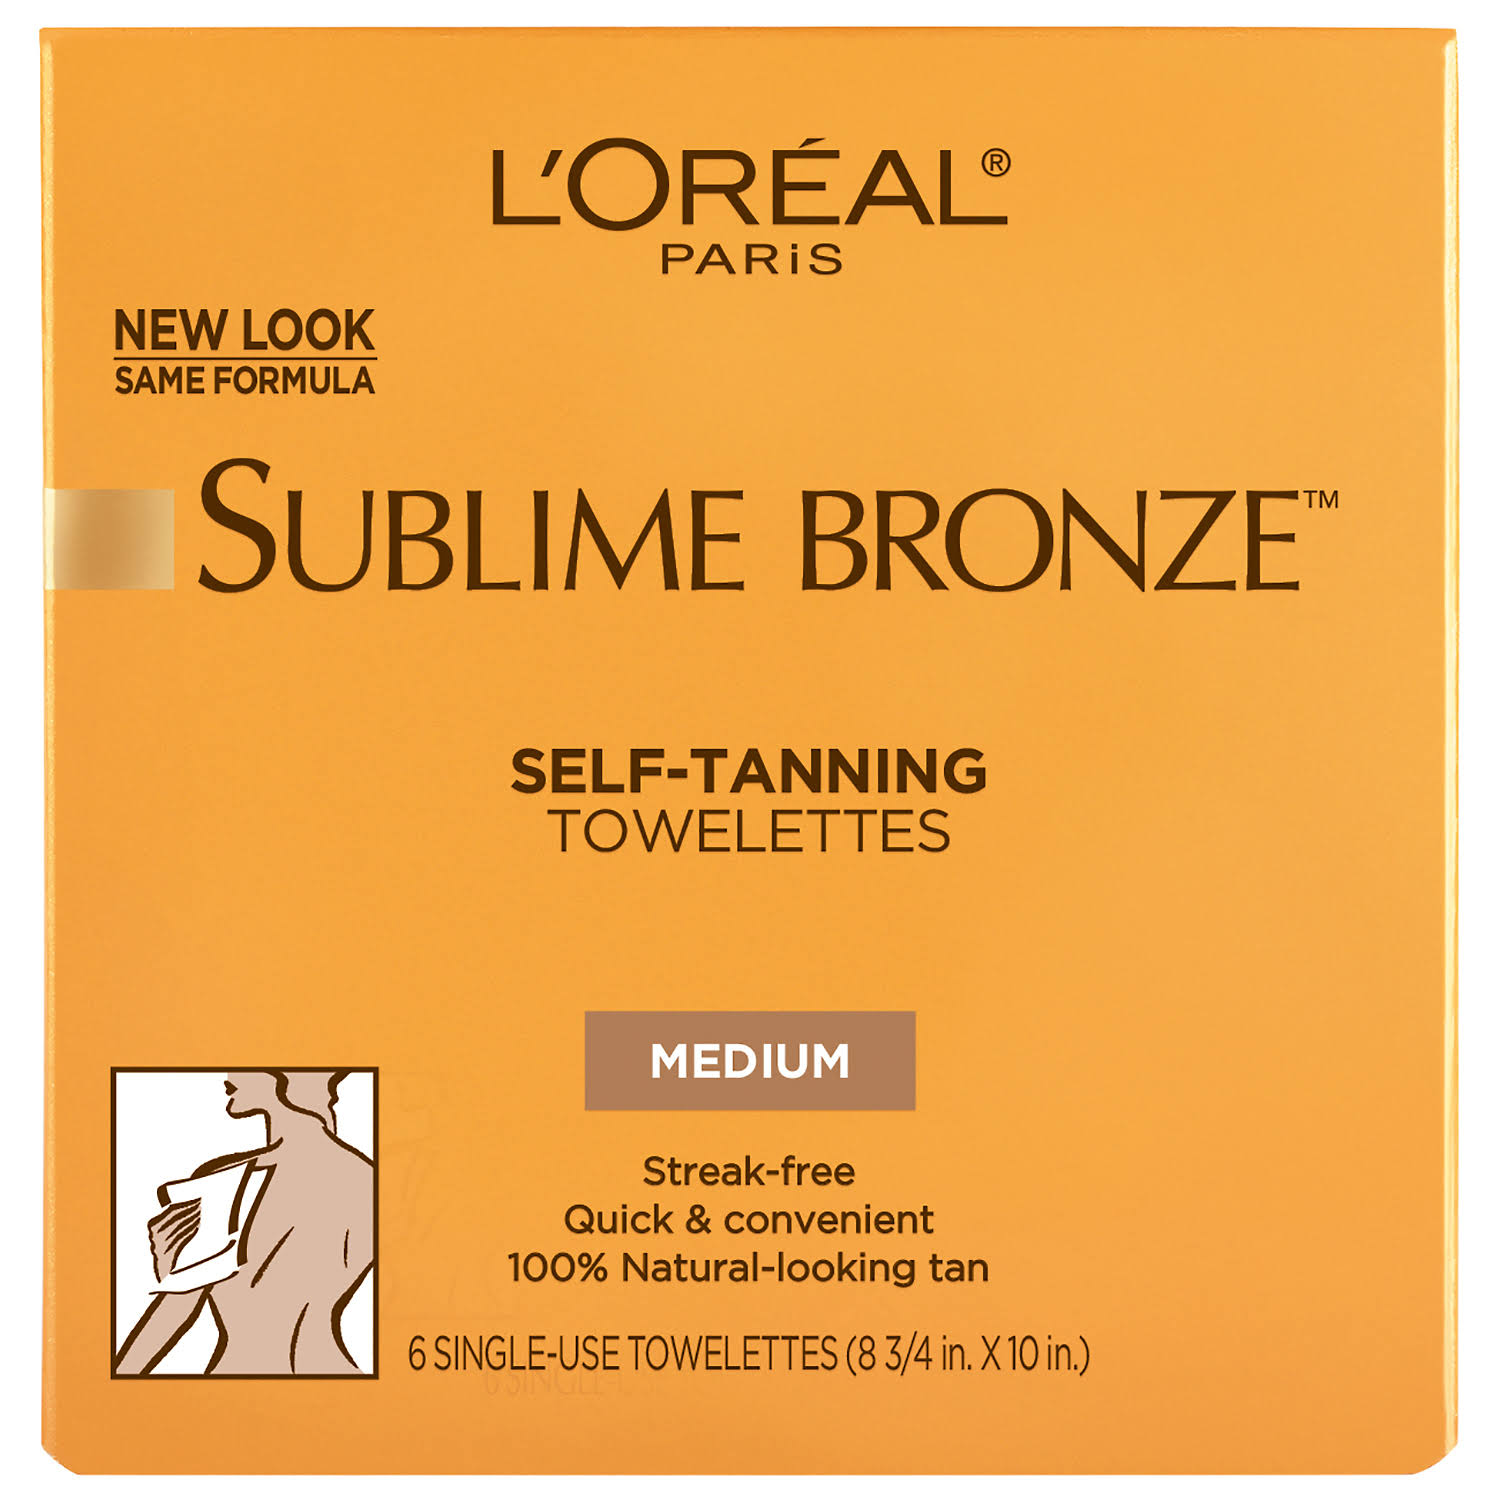 L'Oréal Sublime Bronze Self-Tanning Body Towelettes - 6 Towelettes, Medium, Natural Tan